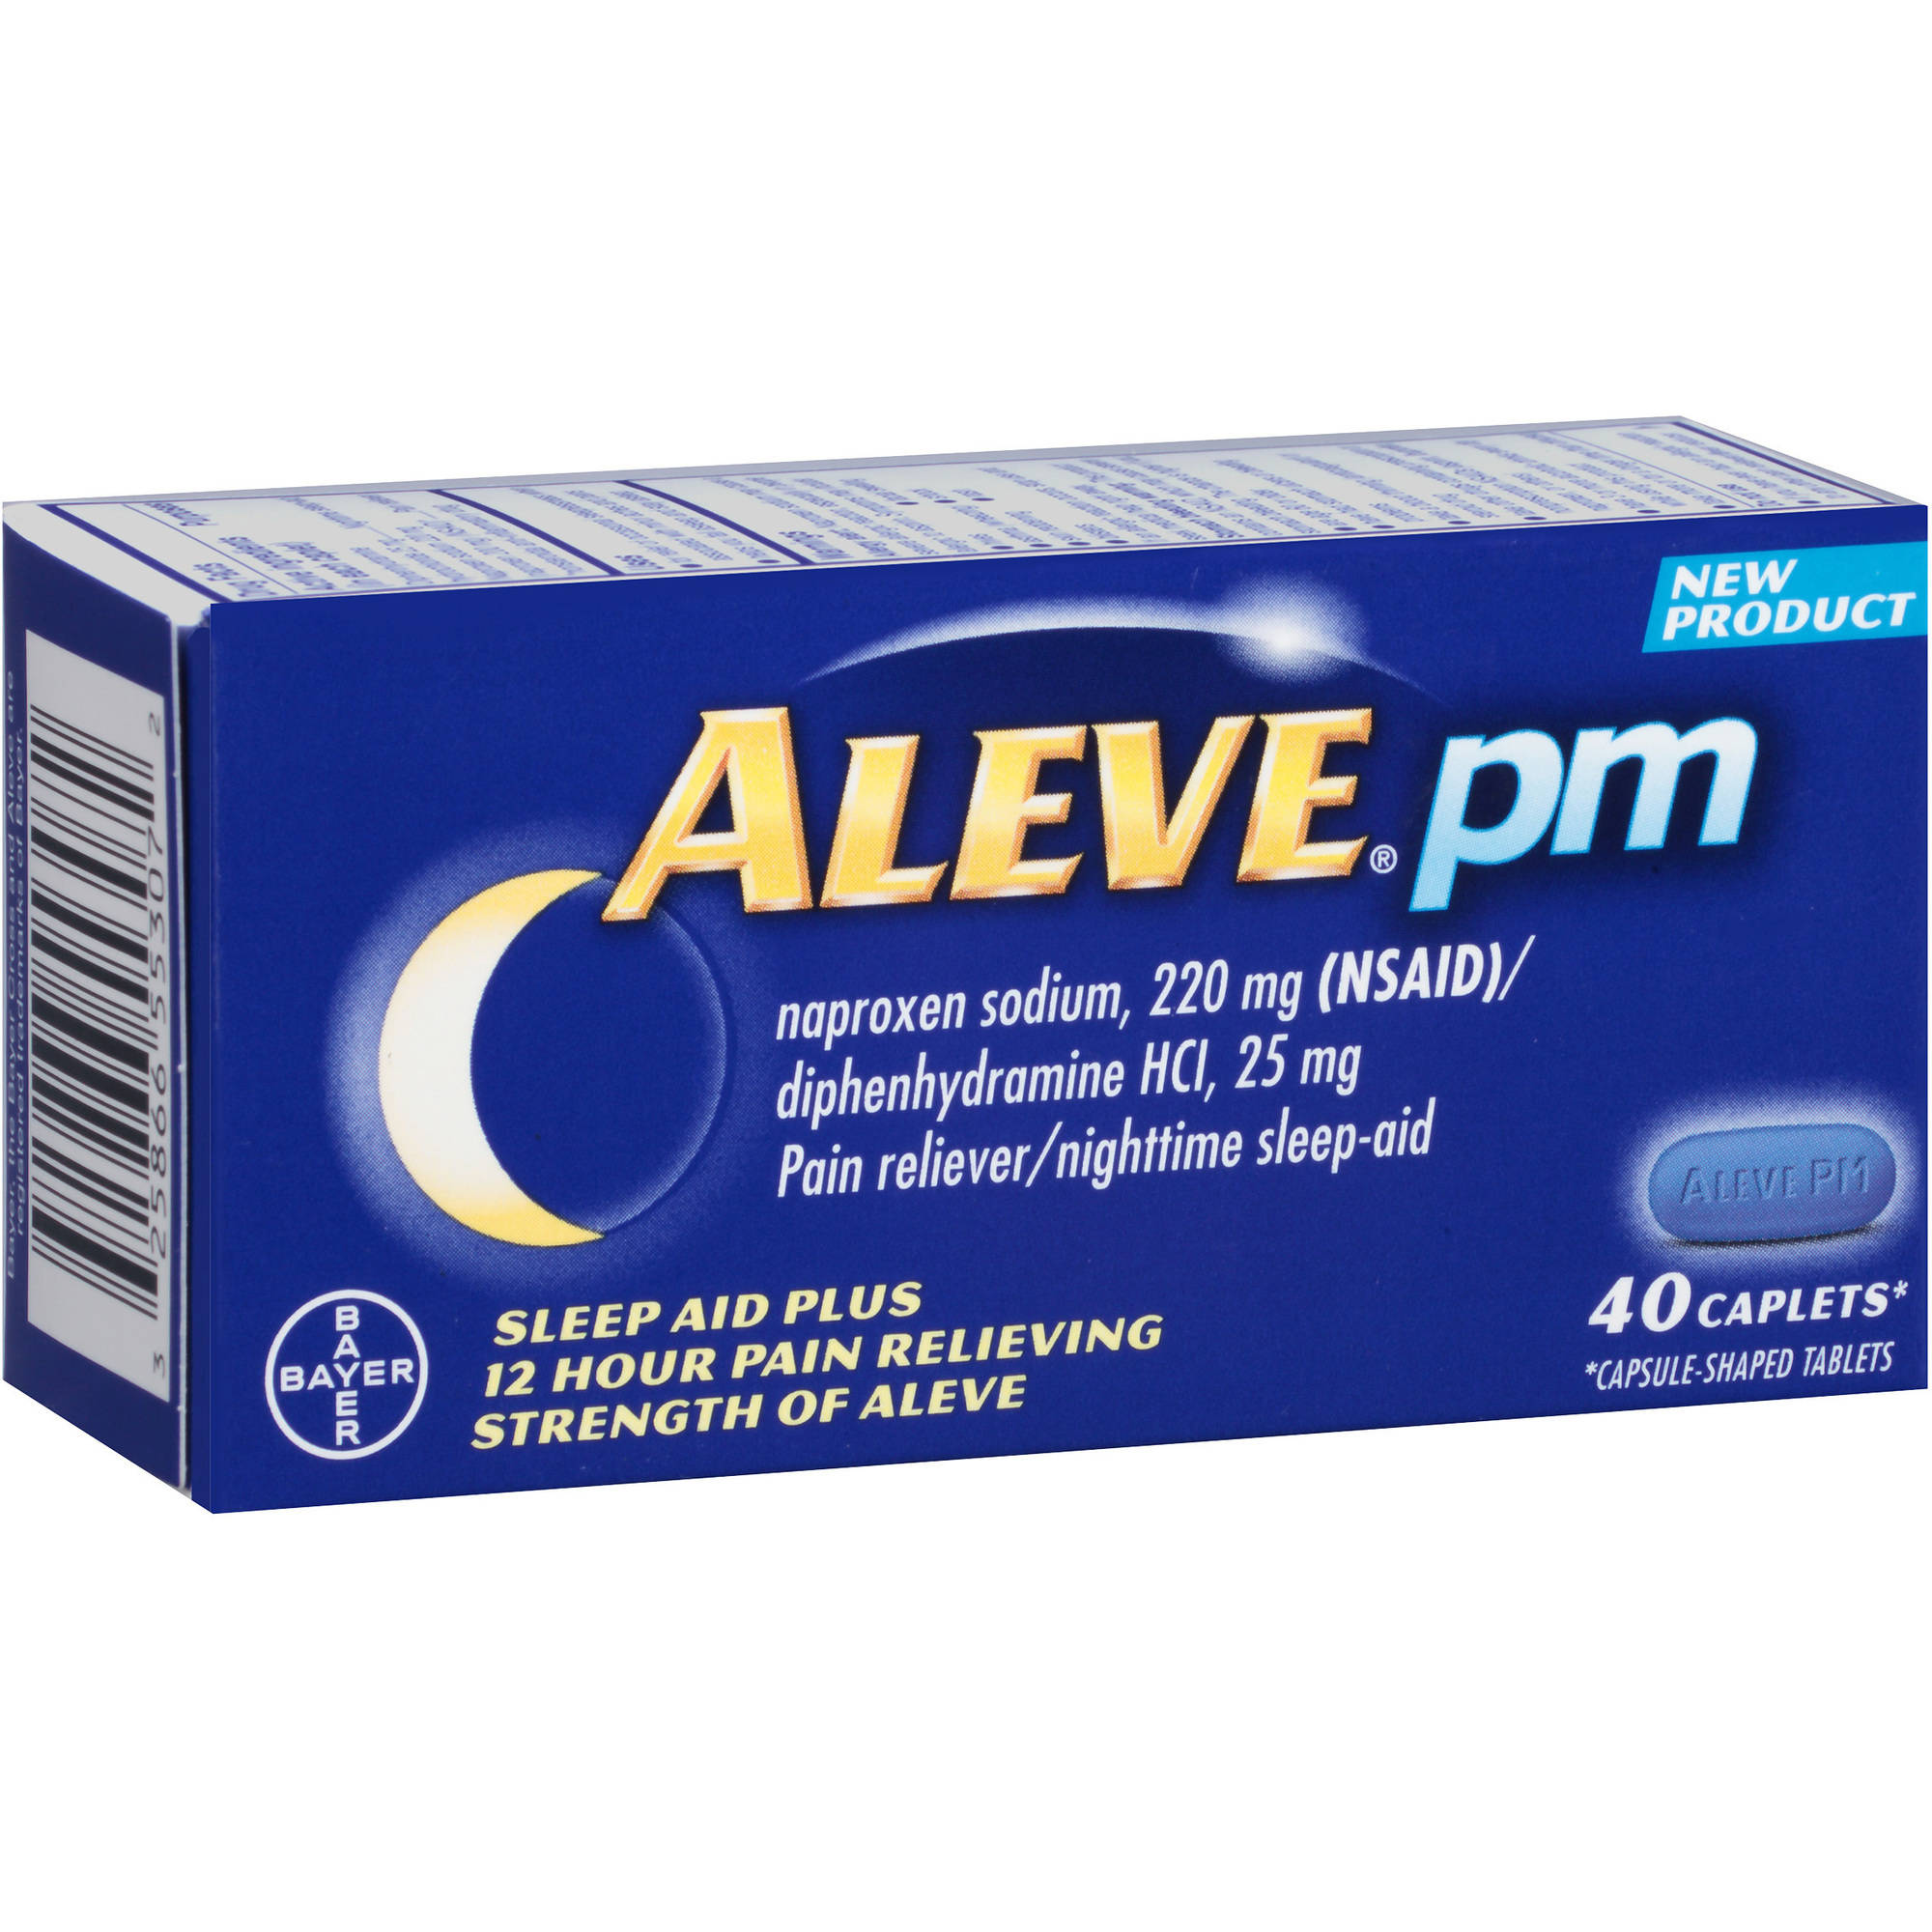 Aleve PM PM Pain Relief Caps, 40 CT (Pack of 3)